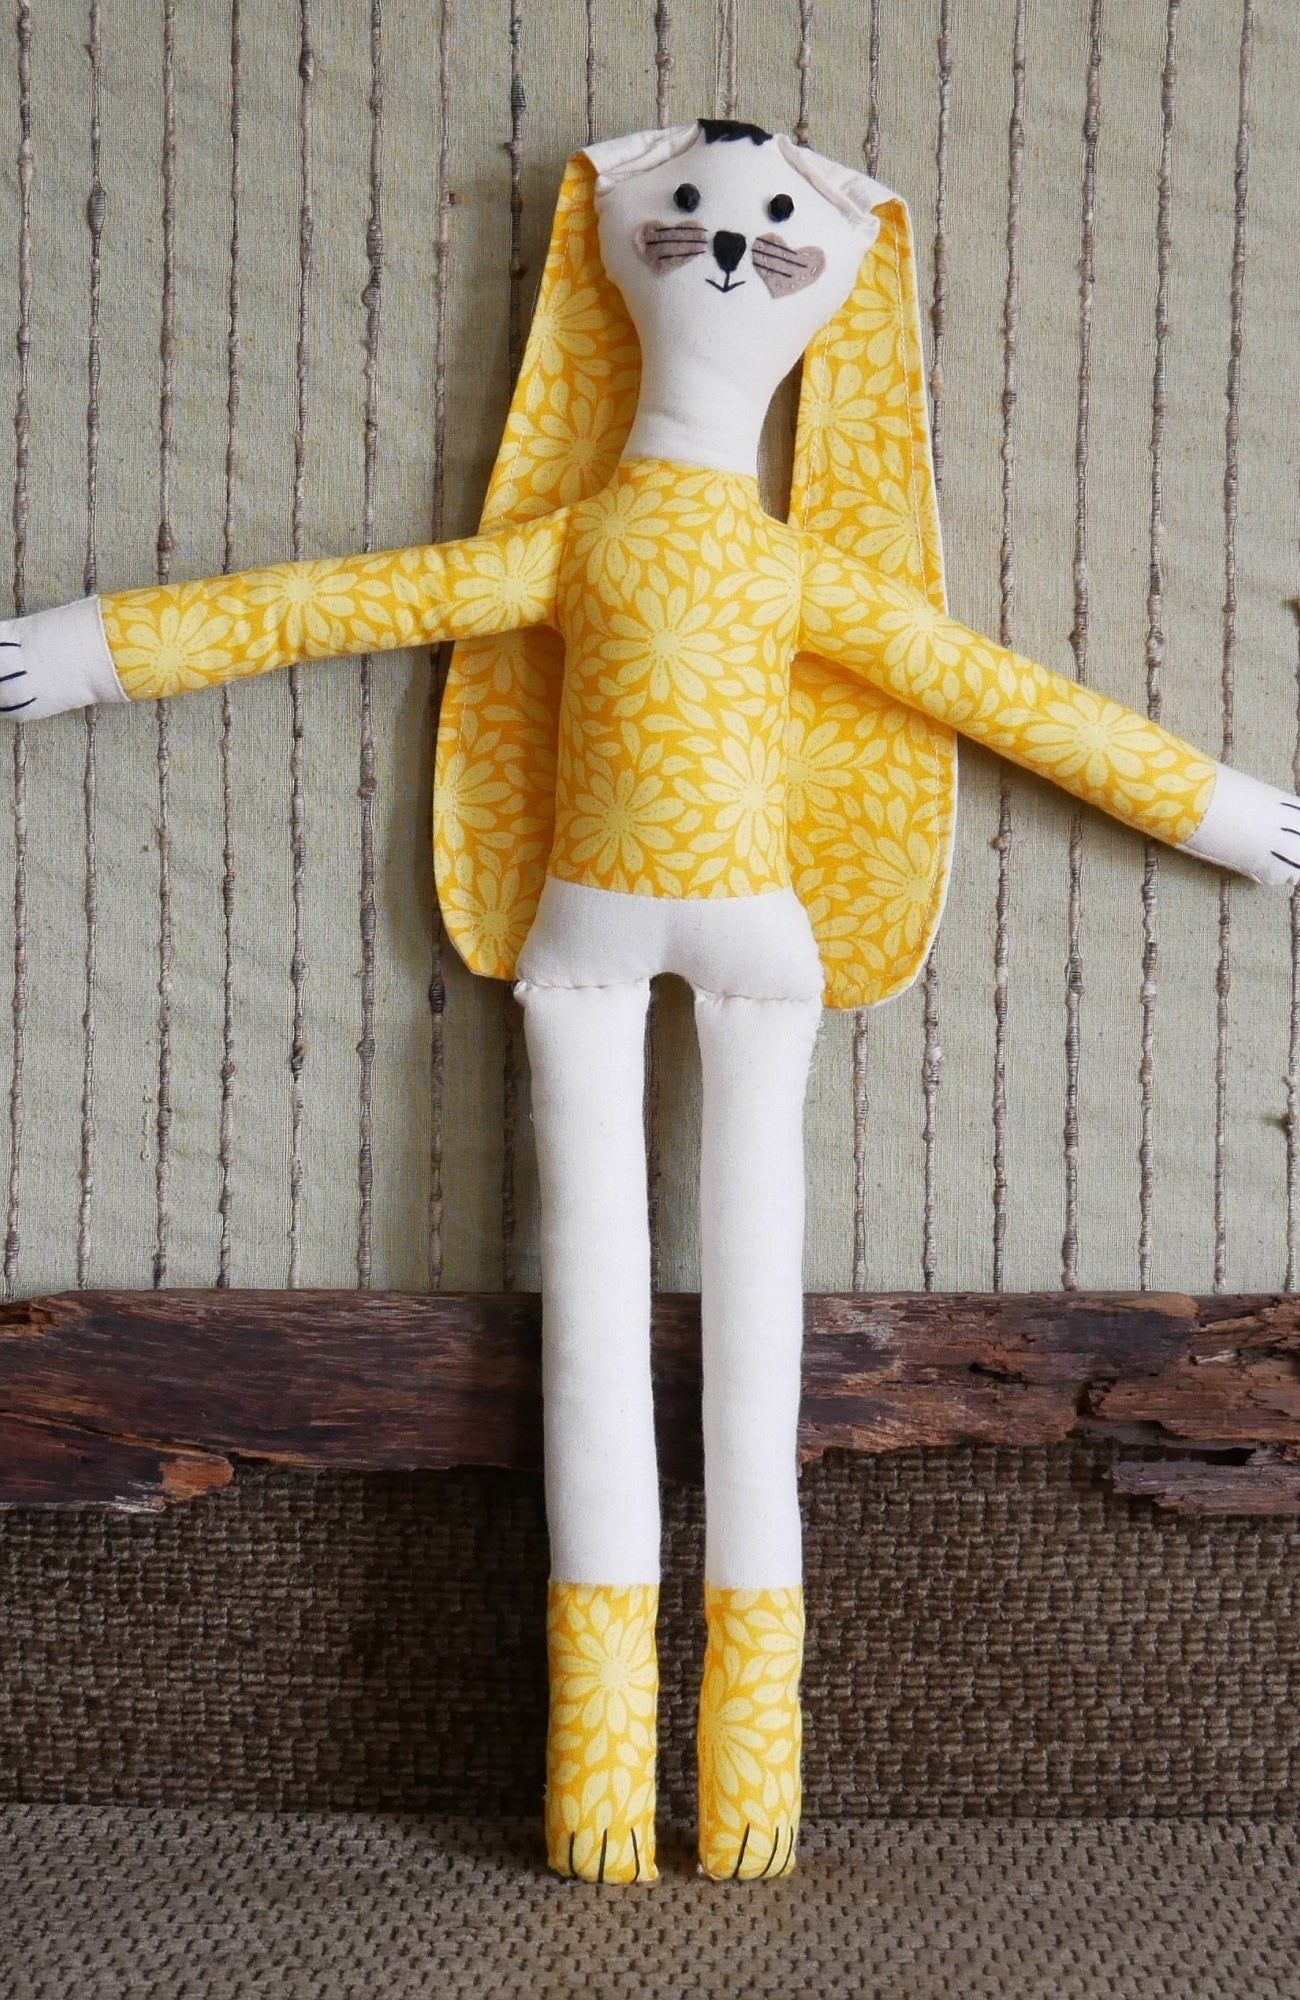 Handmade Rag Doll In Yellow Daisy Soft Cloth - Nchanted Gifts